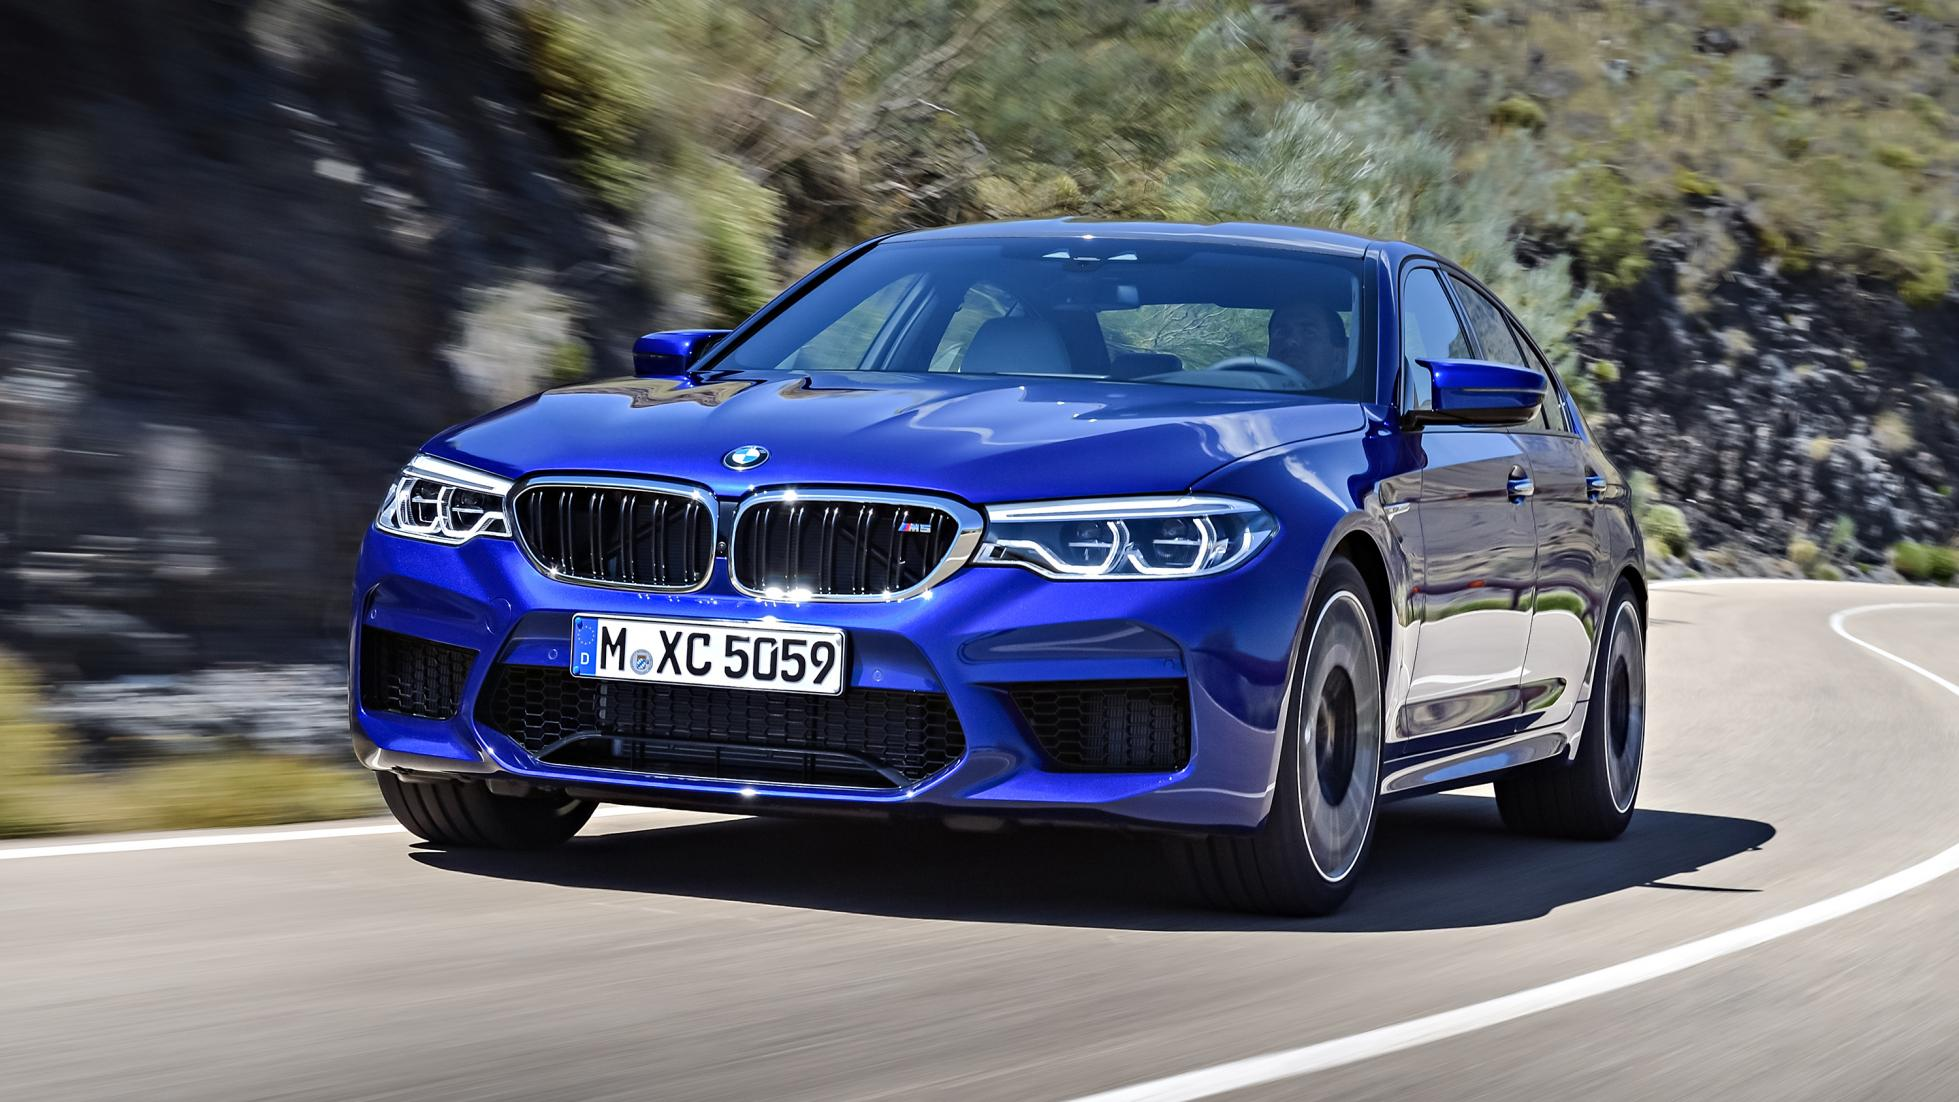 p90272996_highres_the-new-bmw-m5-08-20